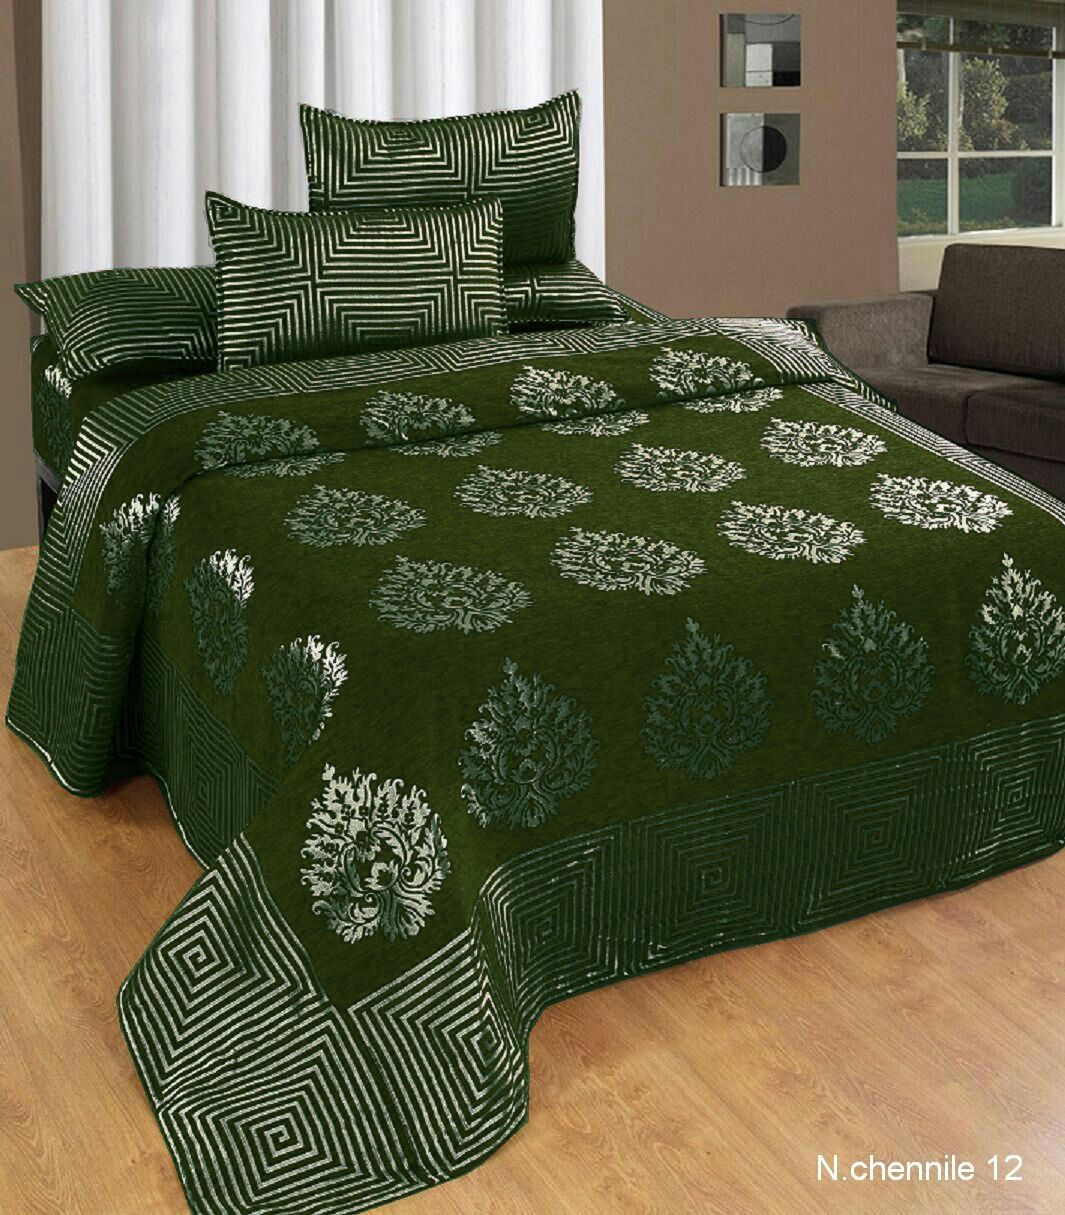 Crafty Chenille Bedcovers for Art Lovers - I